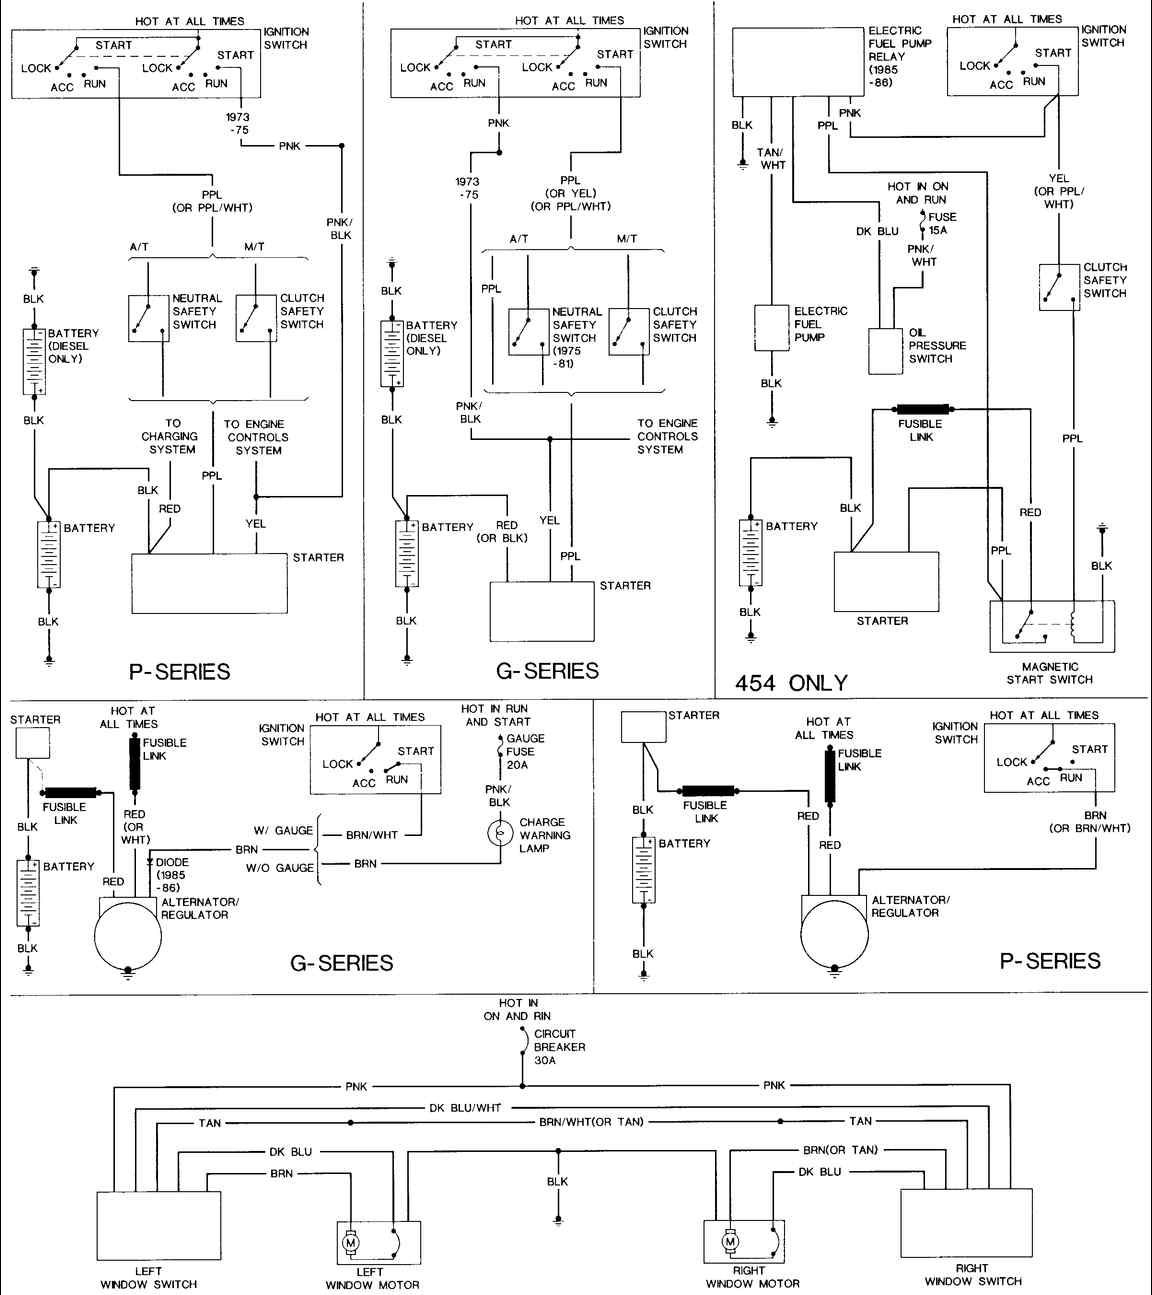 85 Chevy Truck Wiring Diagram Vanthe Steering Column And Started It By Pushingrod